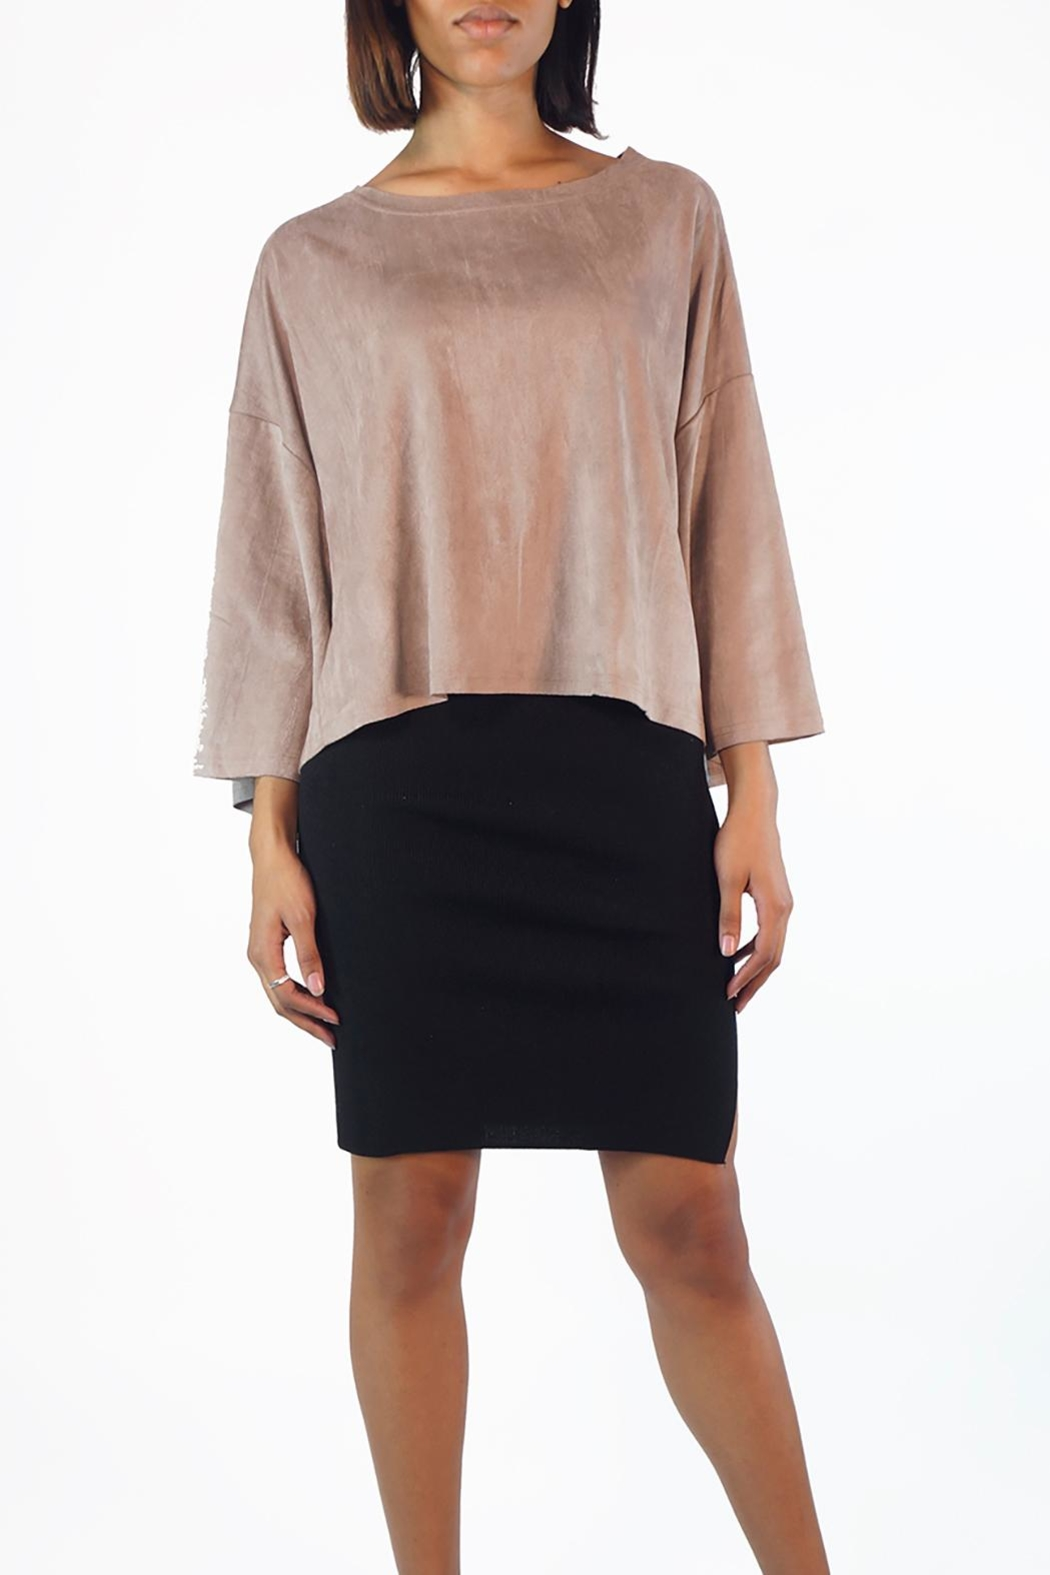 NU New York Taffy Suedette Top - Front Cropped Image